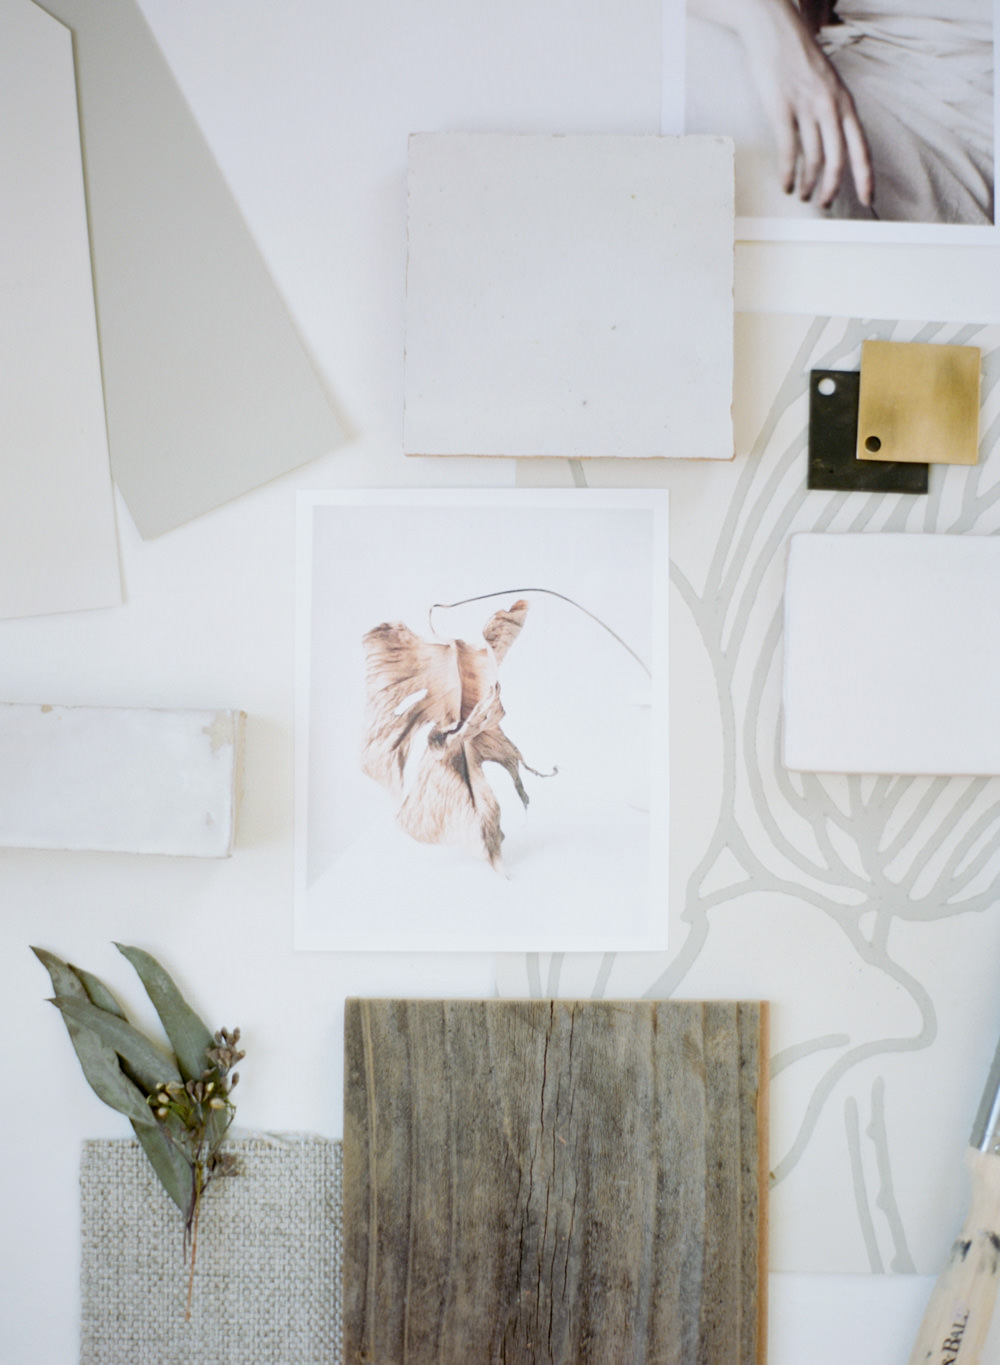 Business Lifestyle + Branding Content Photoshoot for San Fransisco based Designer Natalie Whearley | interiors, inspiration, minimalism, simple, califorina | Anna Peters, Seattle Wedding and Lifestyle Photography